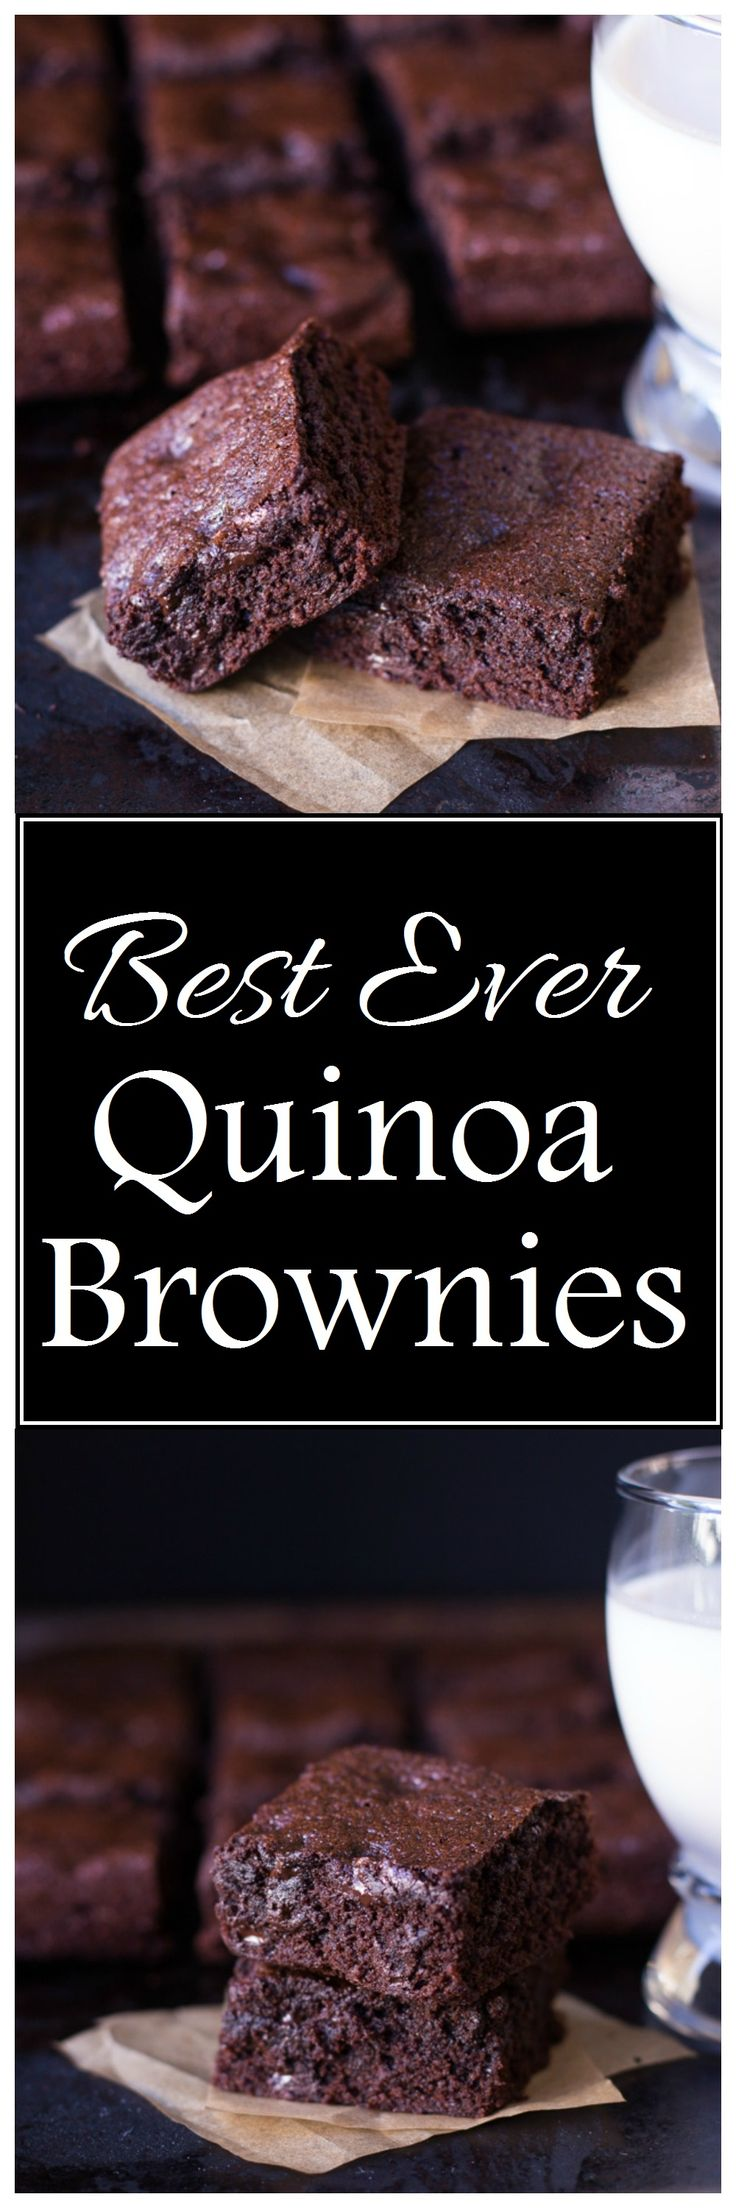 Best-Ever Quinoa Brownies 0011